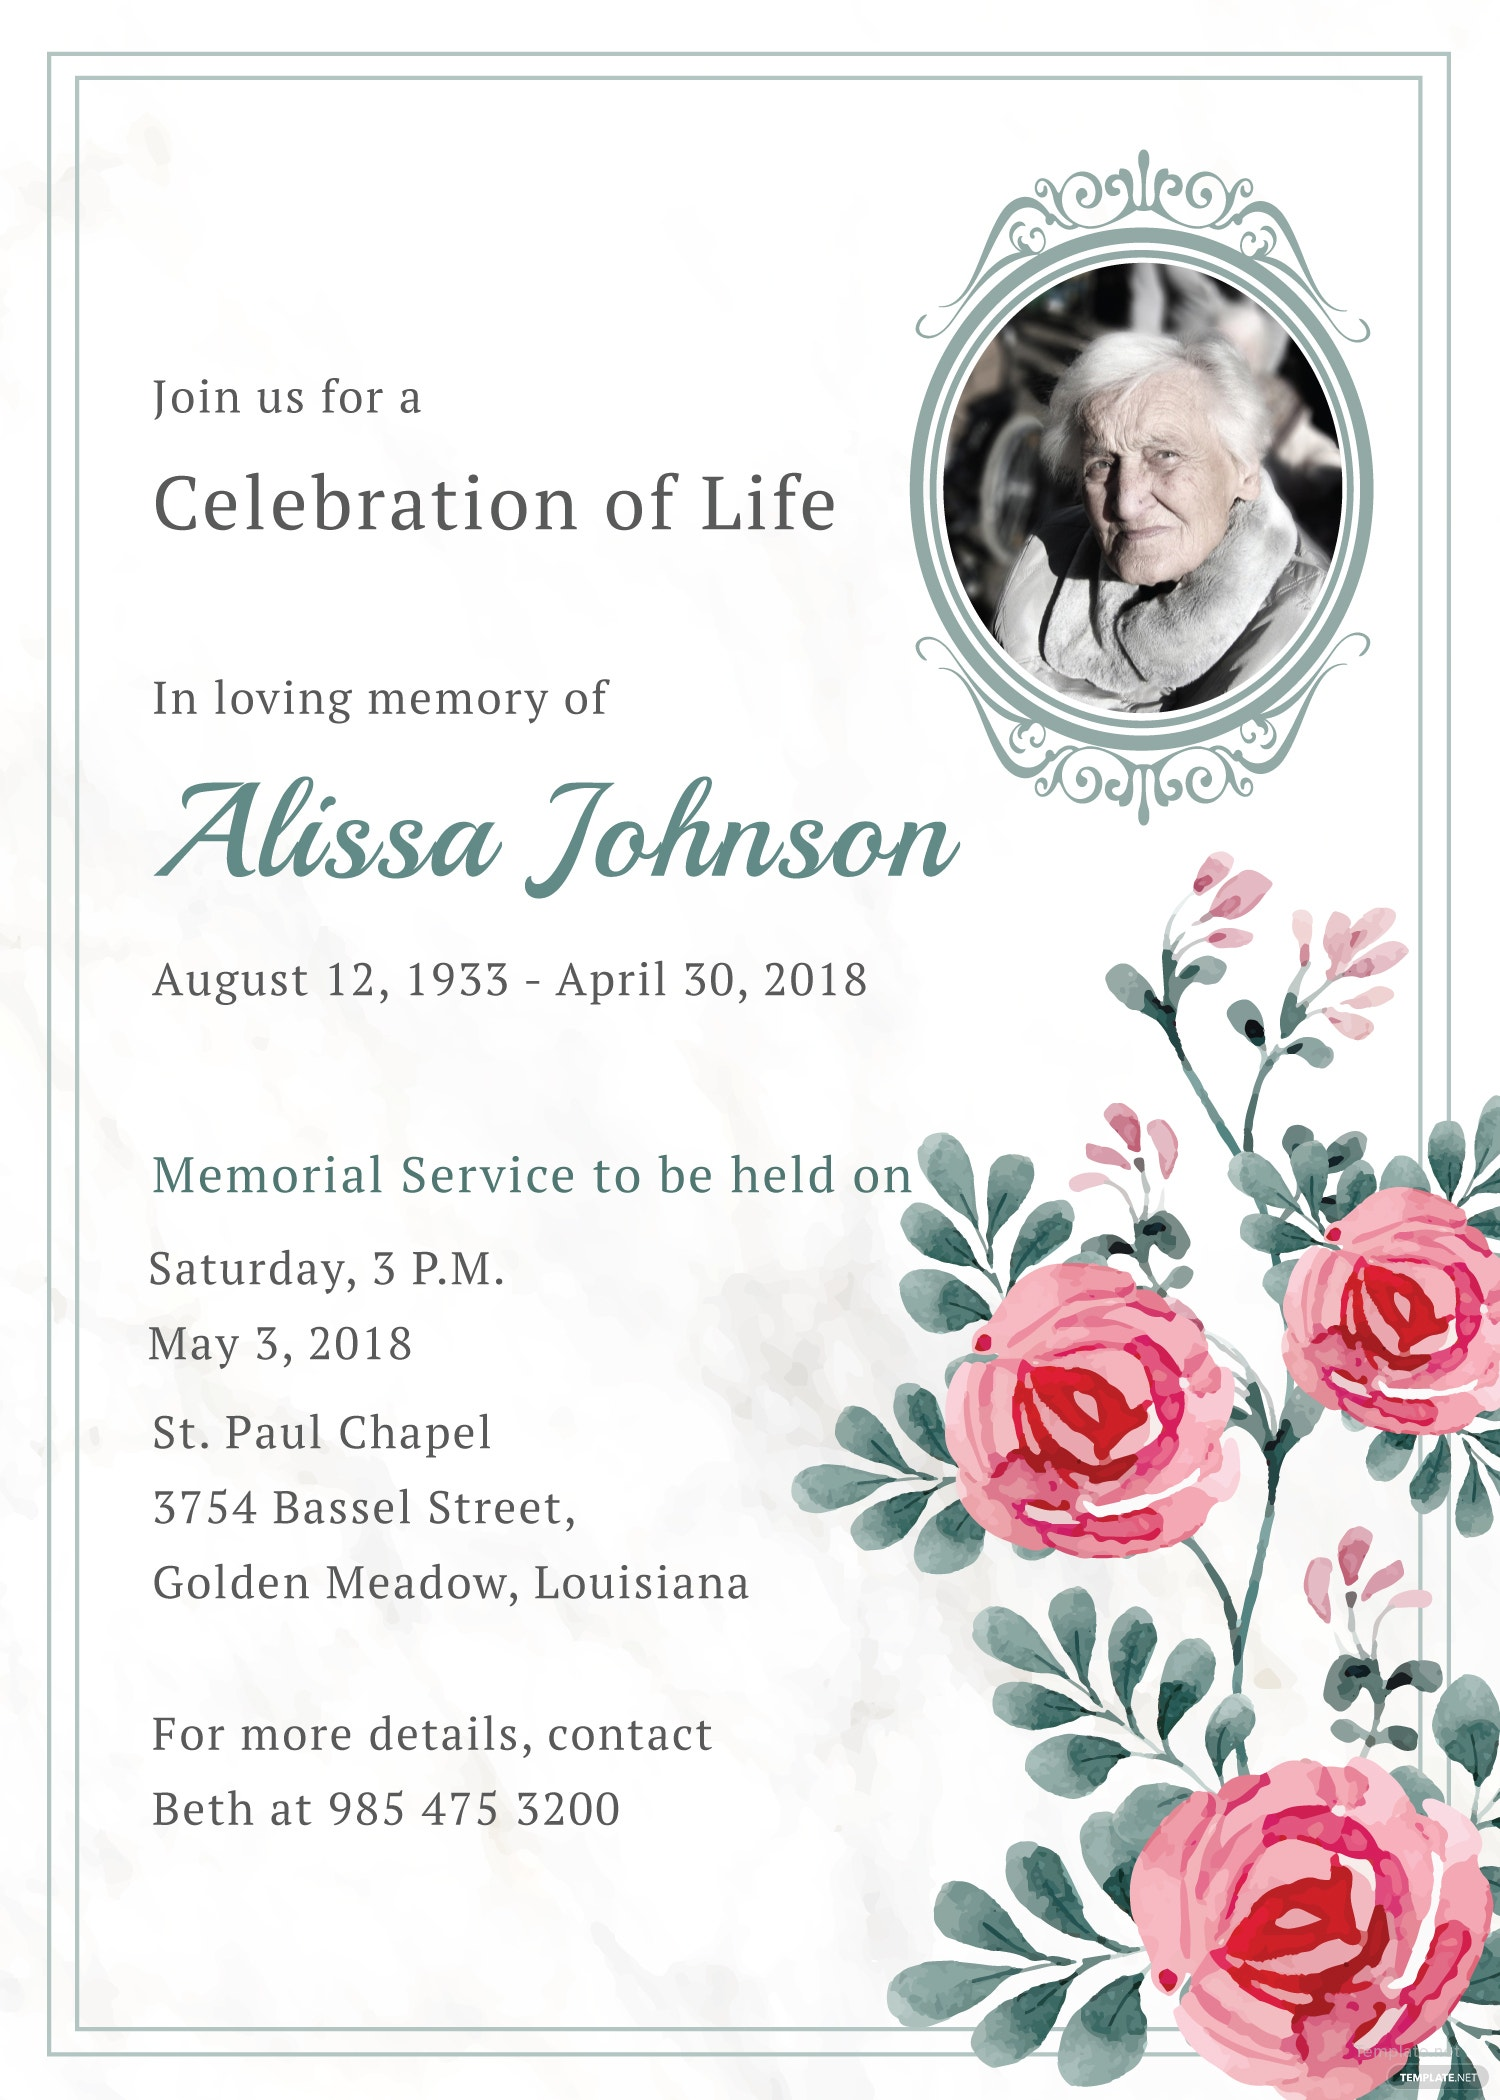 Memorial Service Invitation Template in Adobe Illustrator, Photoshop ...